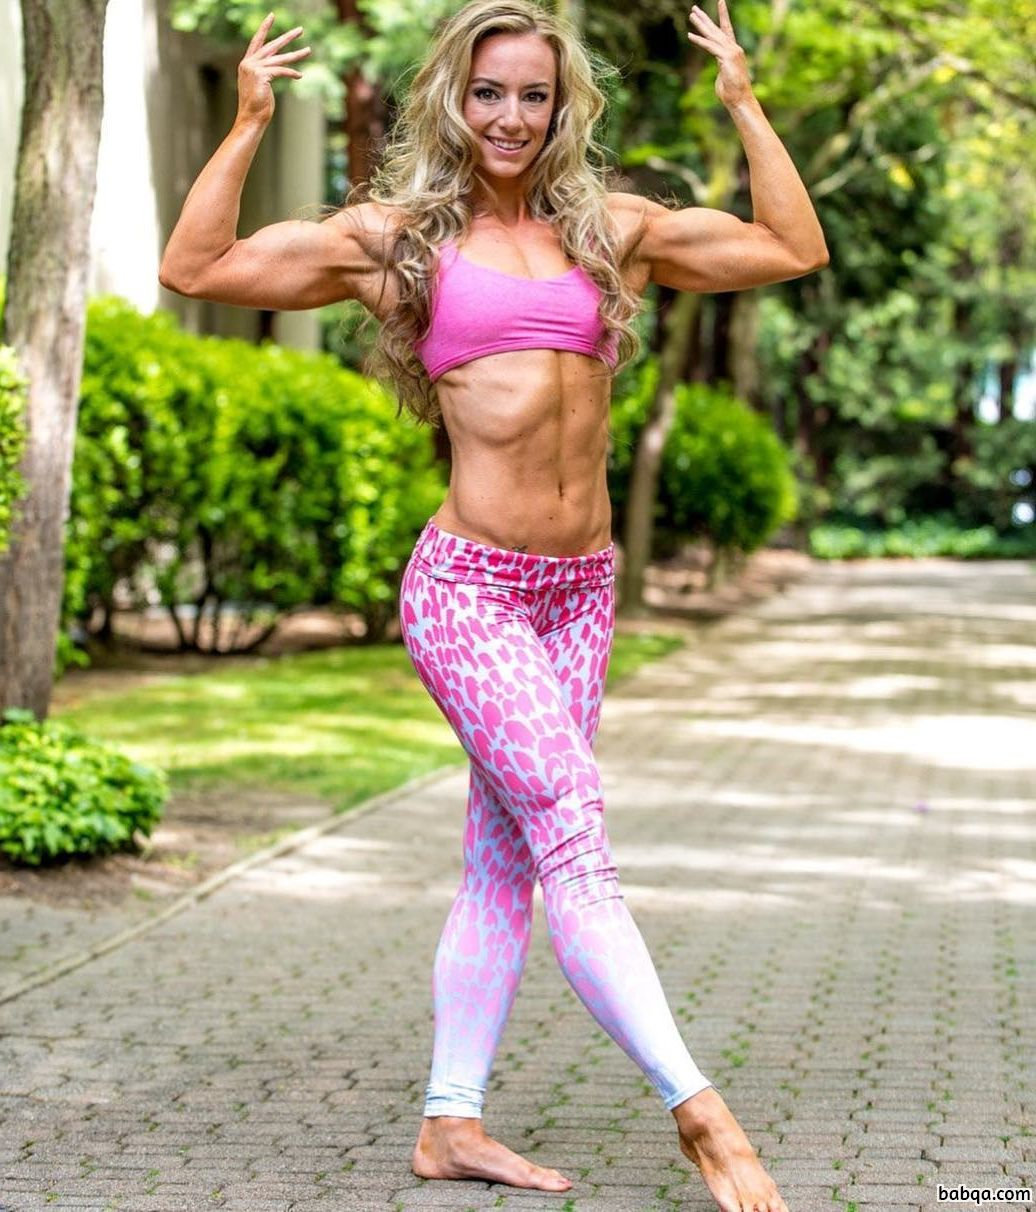 hot woman with strong body and muscle legs photo from linkedin